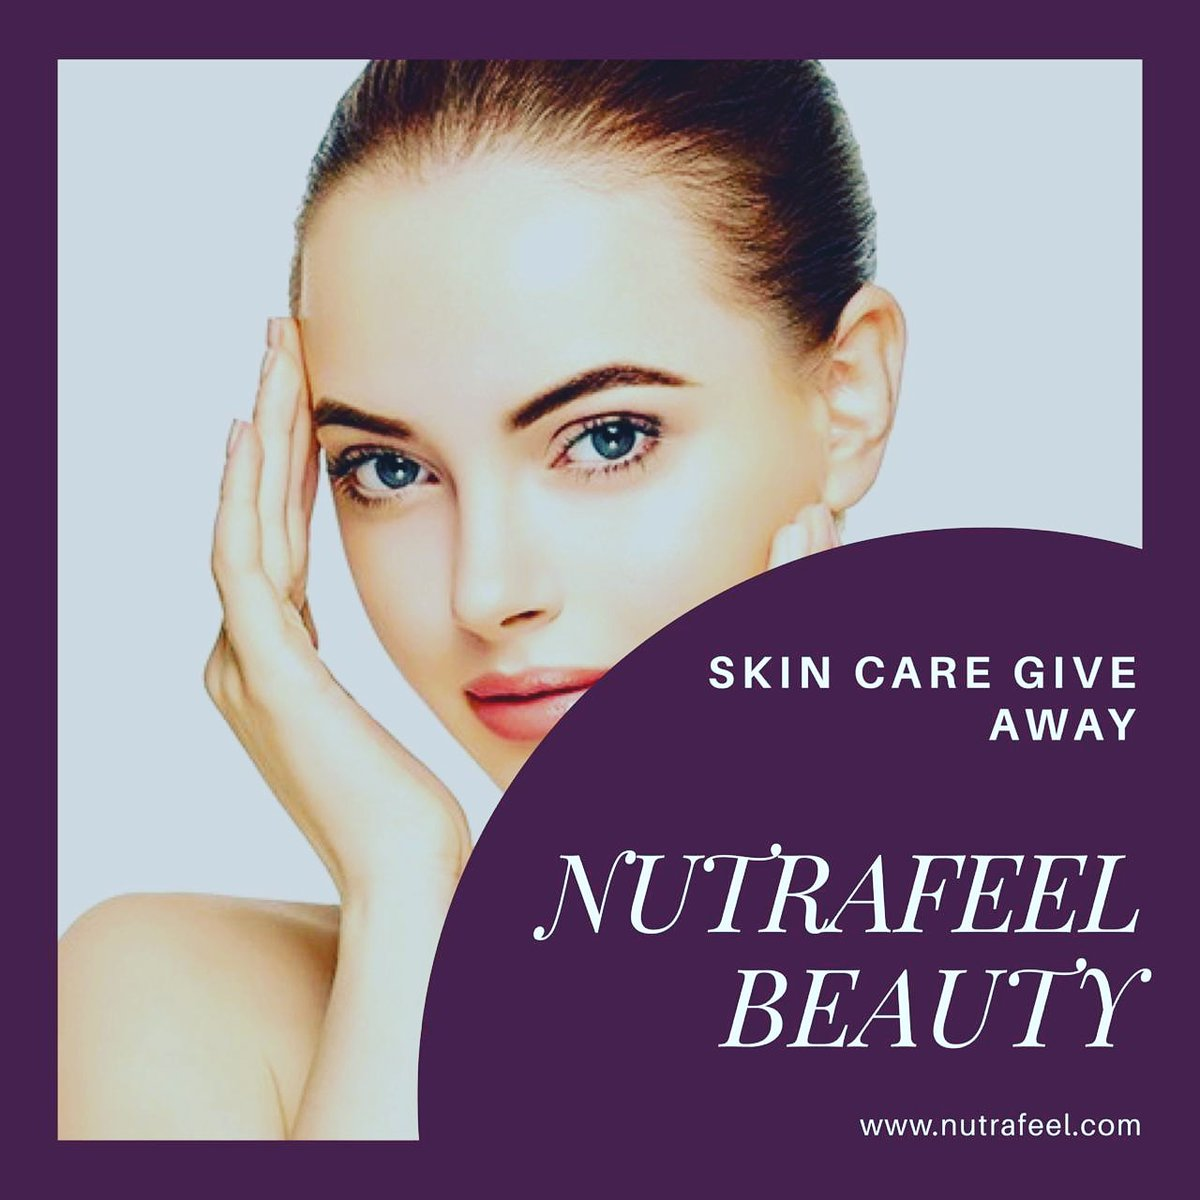 Nutrafeel Anti-Aging ANTI-CELLULITE Products make you feel younger again, Shop Now :  . #Beauty #blackfriday #cybermonday #saturdayvibes